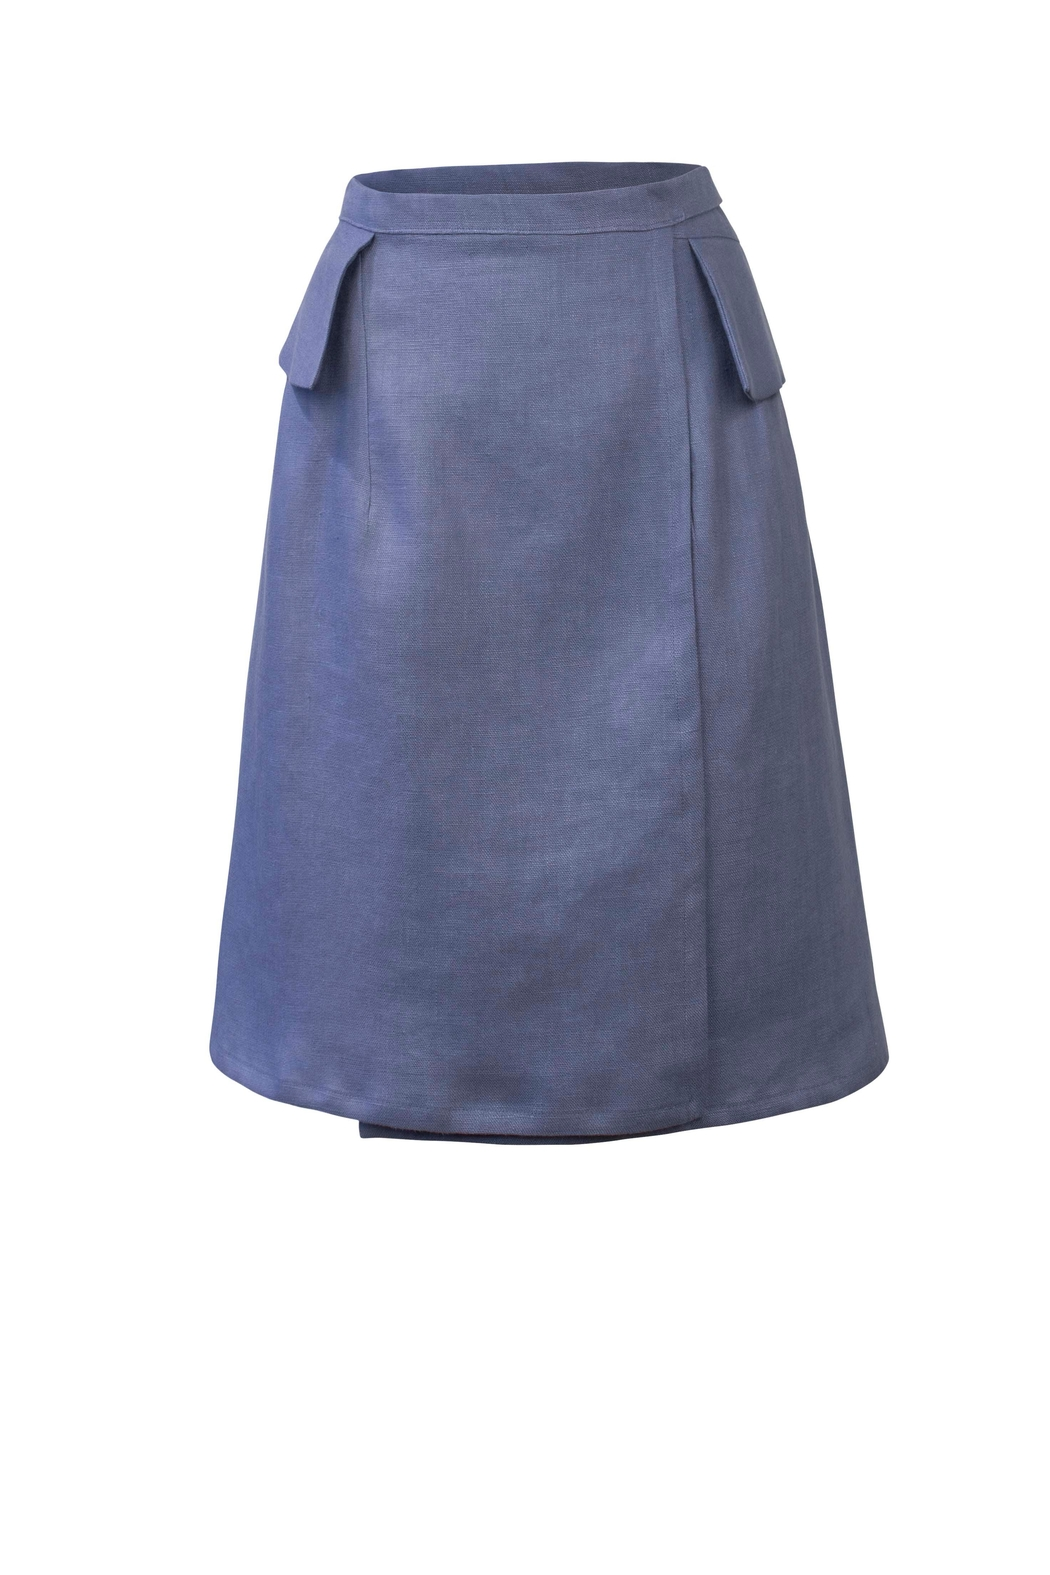 Helena Jones Wrap-Around Skirt - Front Cropped Image